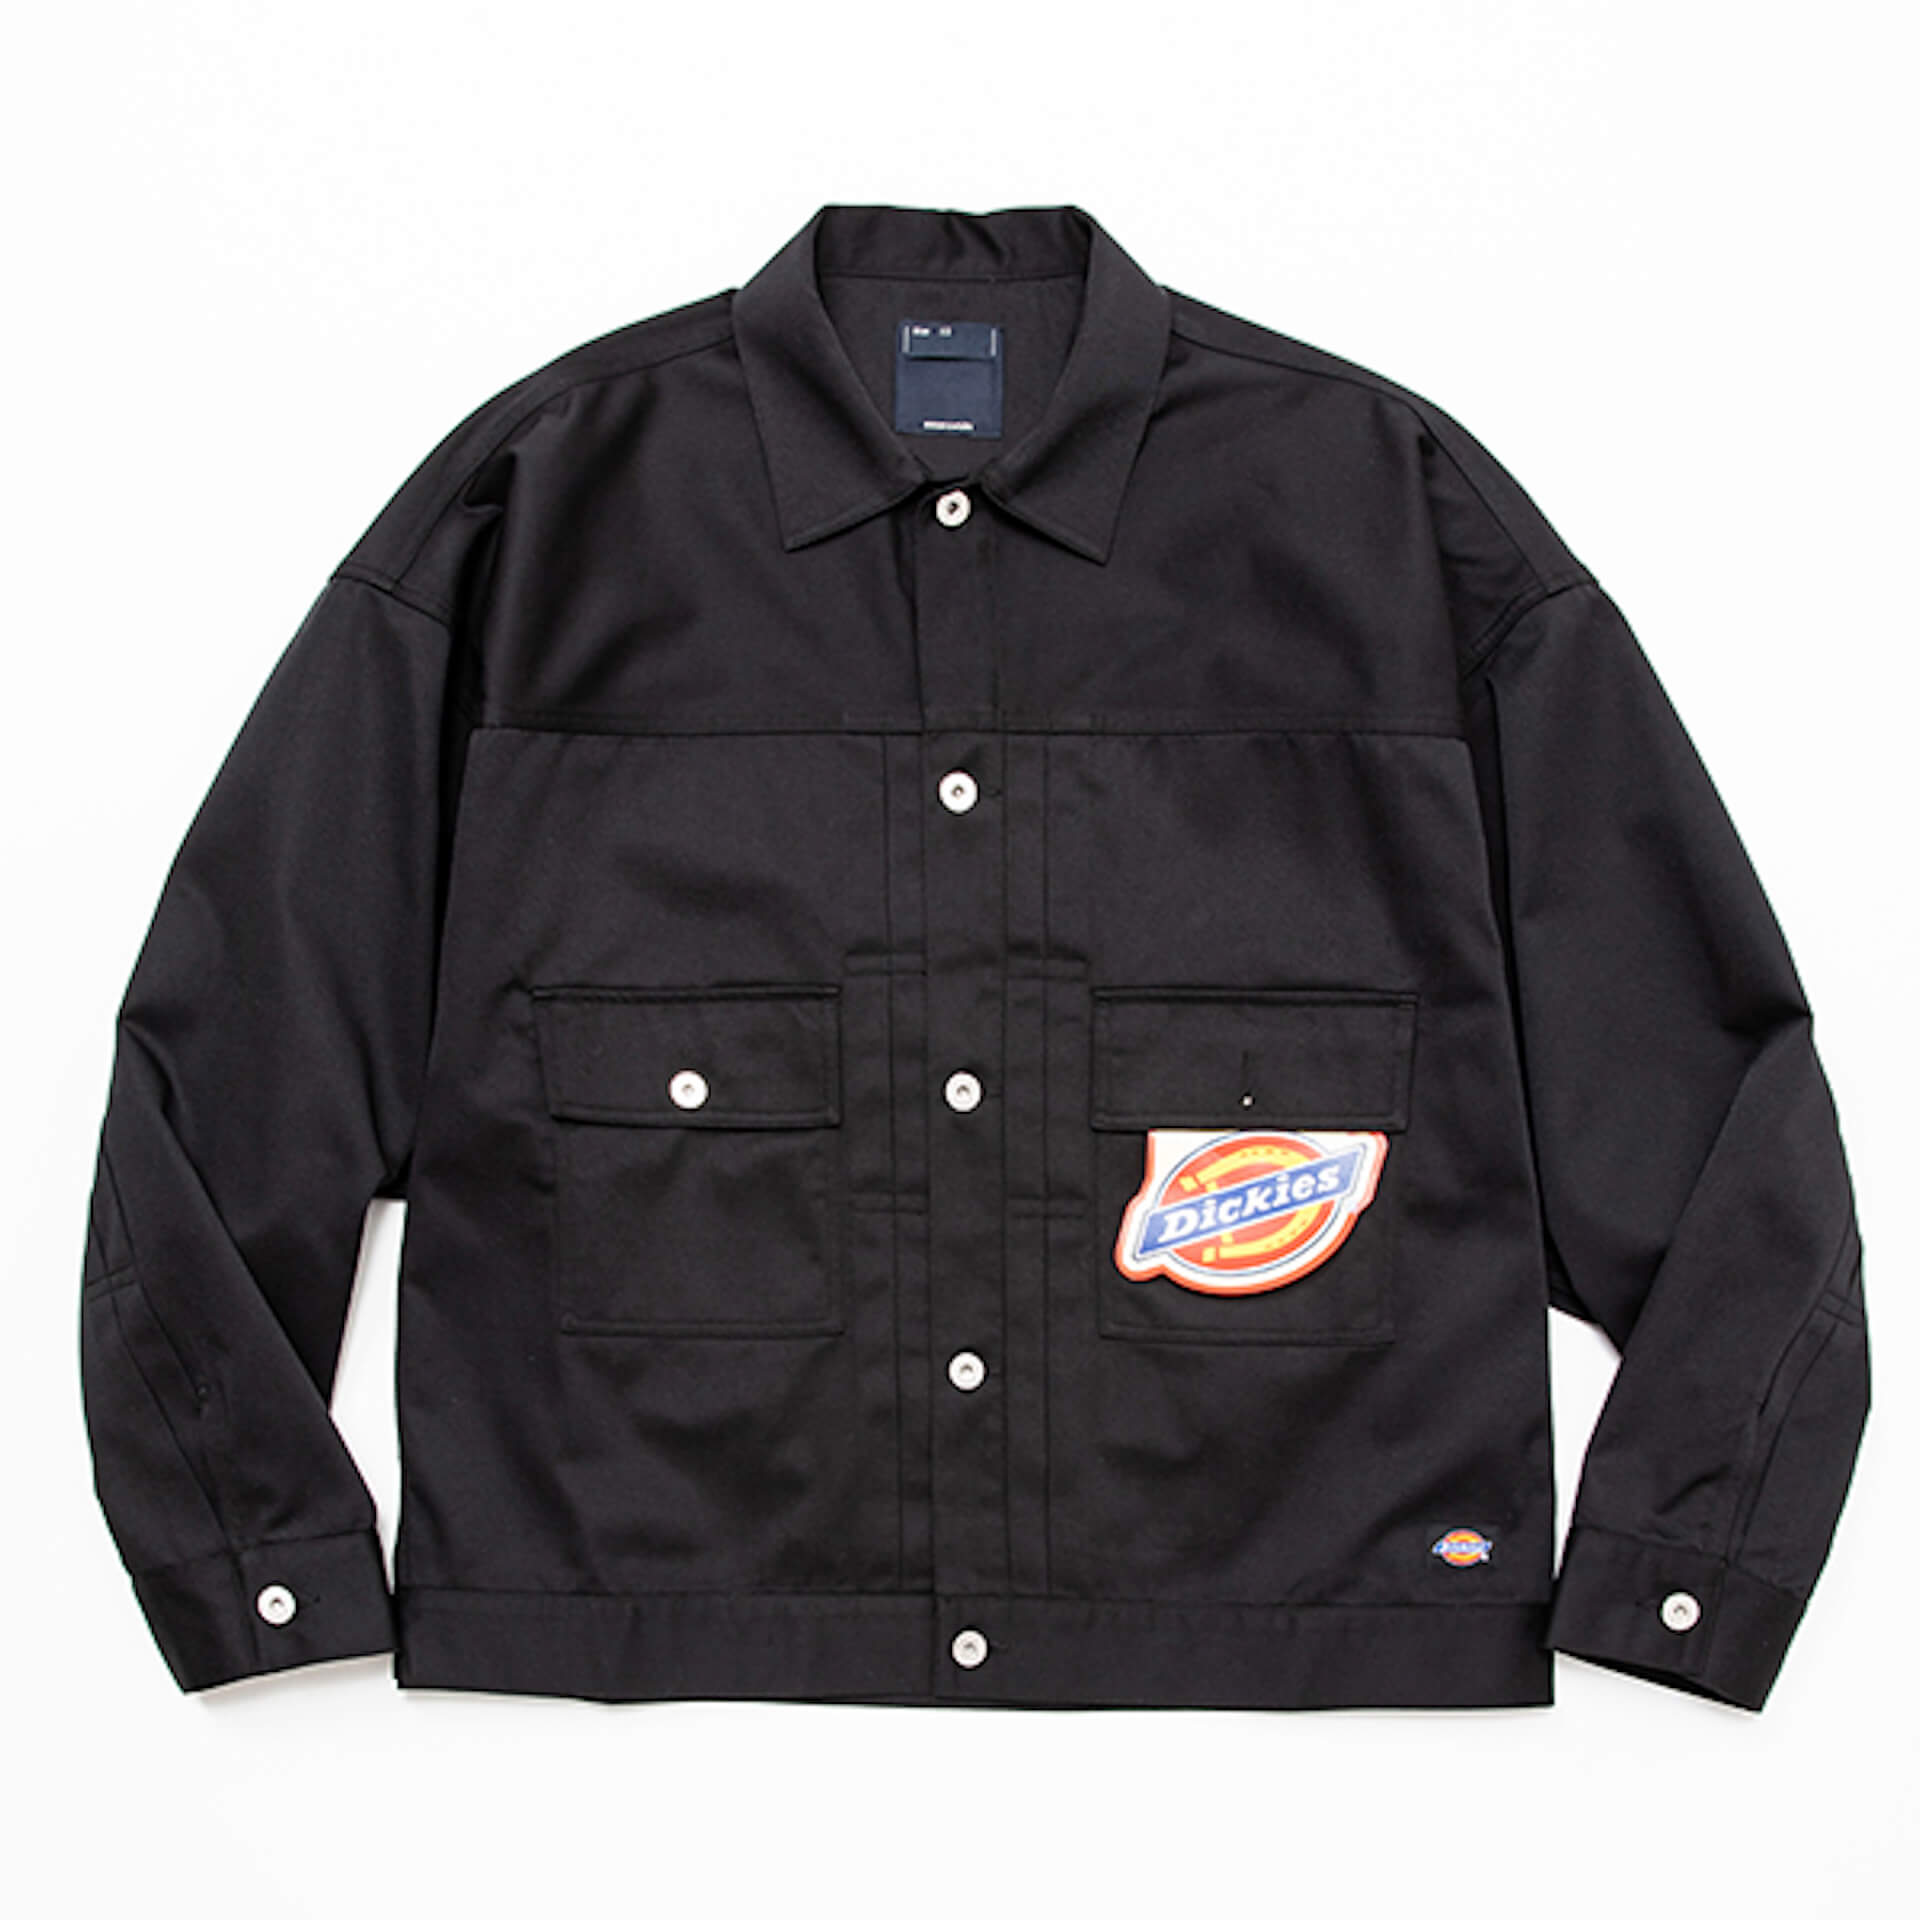 meanswhileとDickiesコラボ第2弾!定番素材を使用したセットアップが登場 lifefashion210901_meanswhile_1